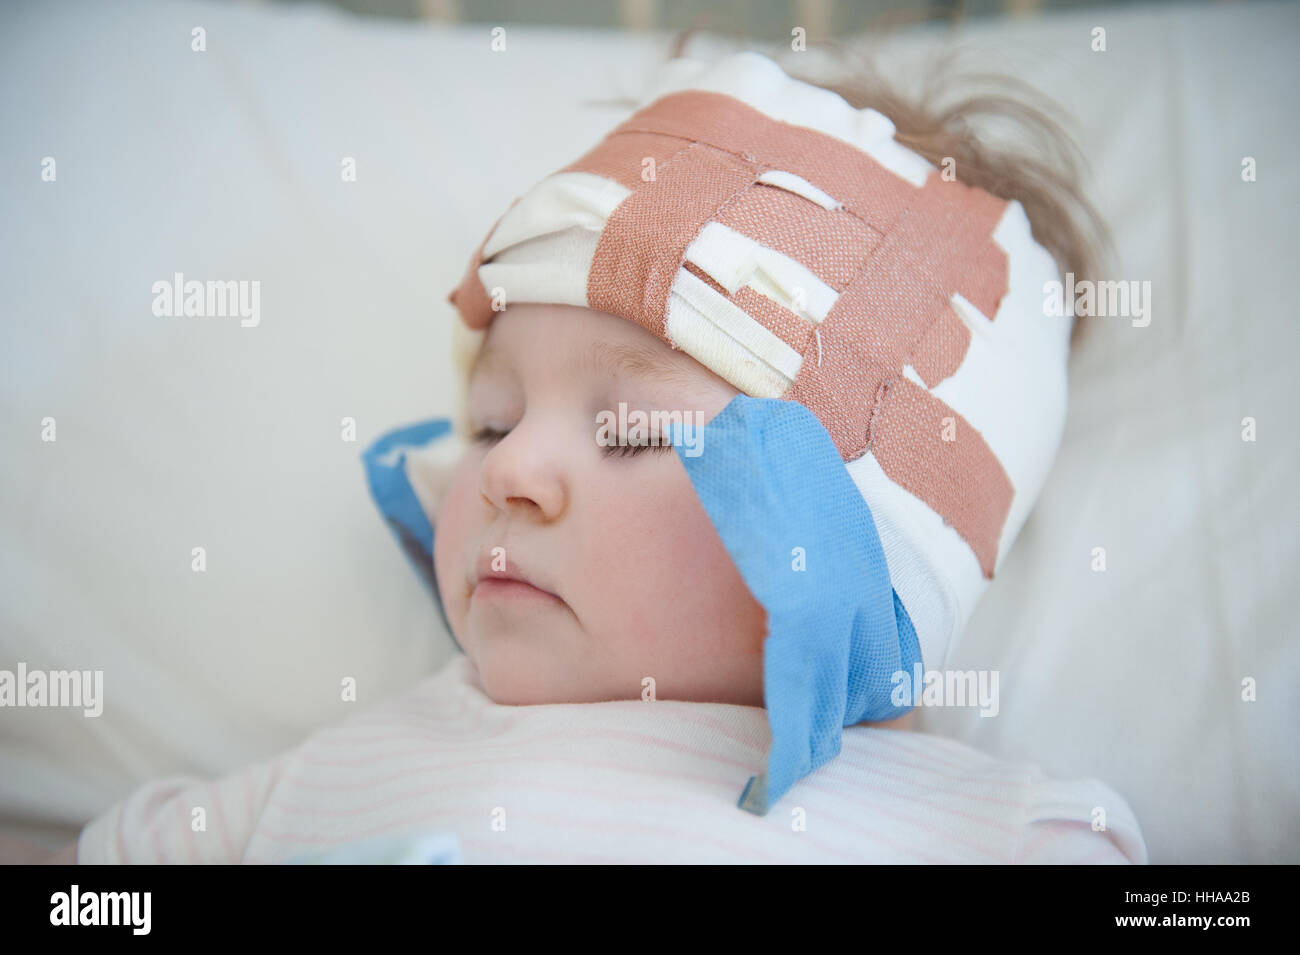 A baby girl lying asleep in a hospital bed with her head bandaged after a cochlear implant operation - Stock Image